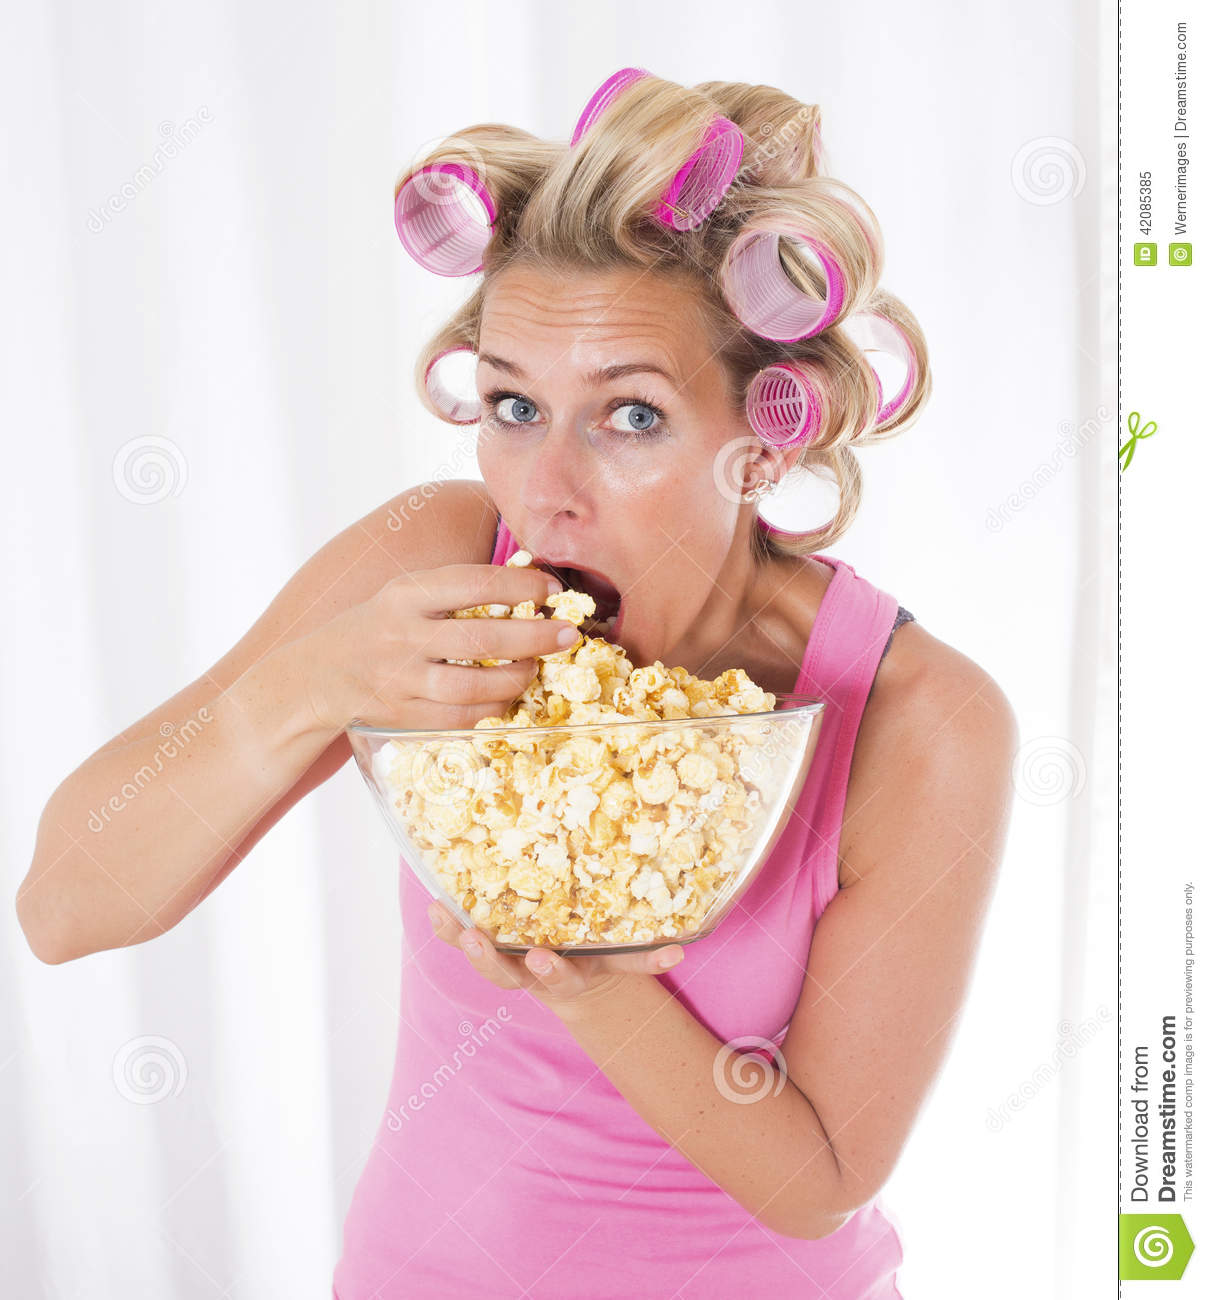 woman with curlers eating popcorn stock image image of hair